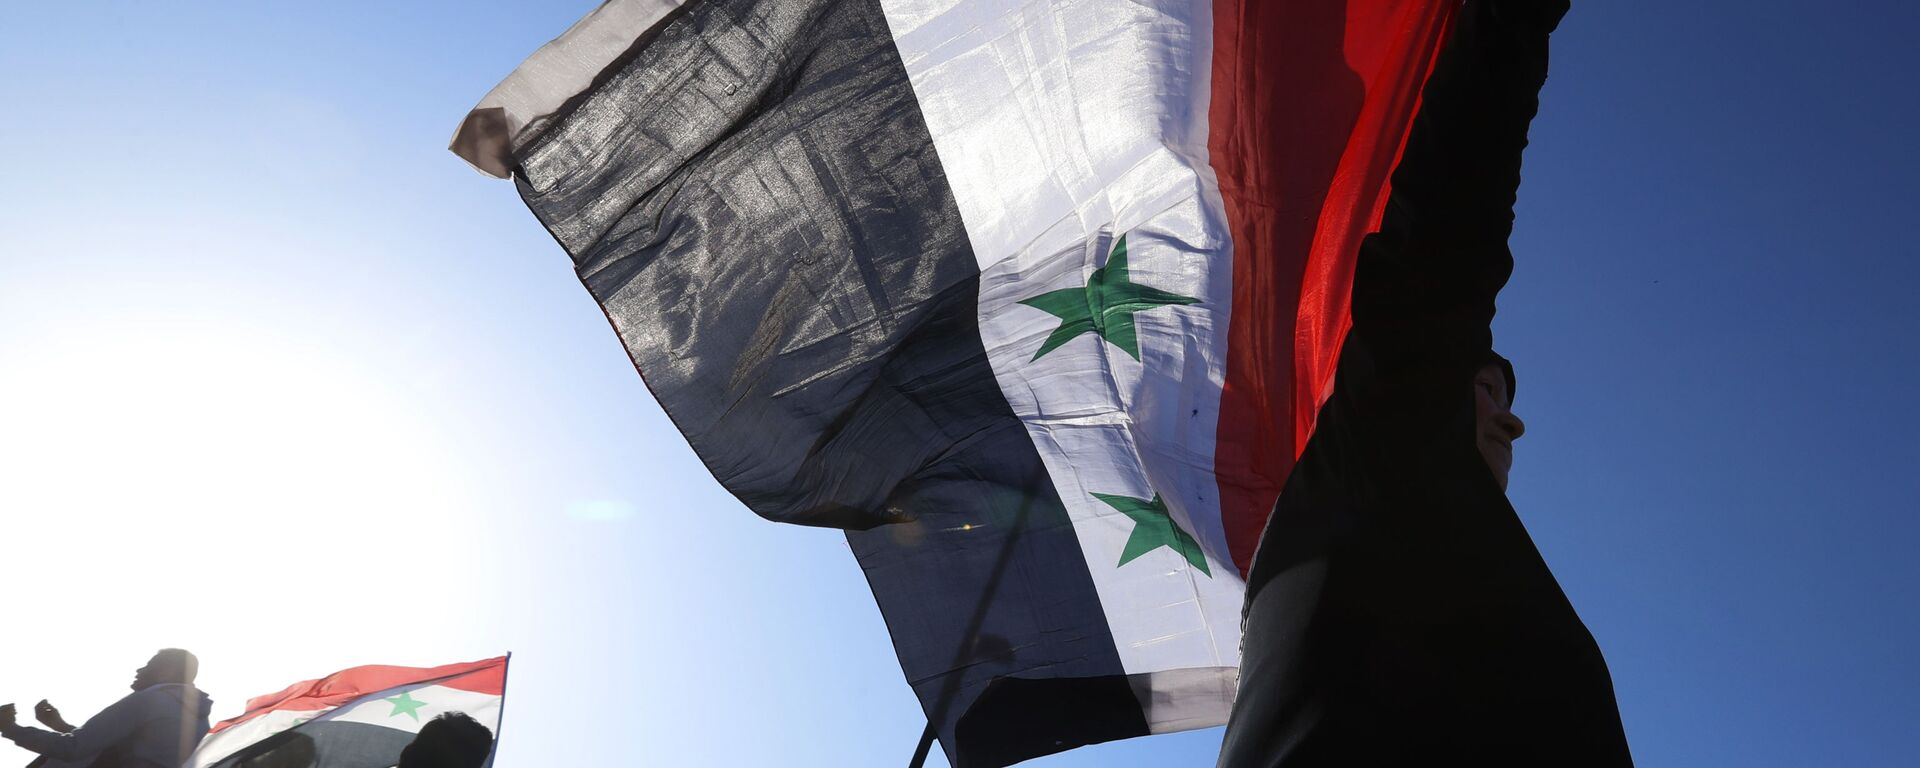 A Syrian government supporter holds up a Syrian national flag as he chants slogans against U.S. President Trump during demonstrations following a wave of U.S., British and French military strikes to punish President Bashar Assad for suspected chemical attack against civilians, in Damascus, Syria, Saturday, April 14, 2018 - Sputnik International, 1920, 23.09.2021